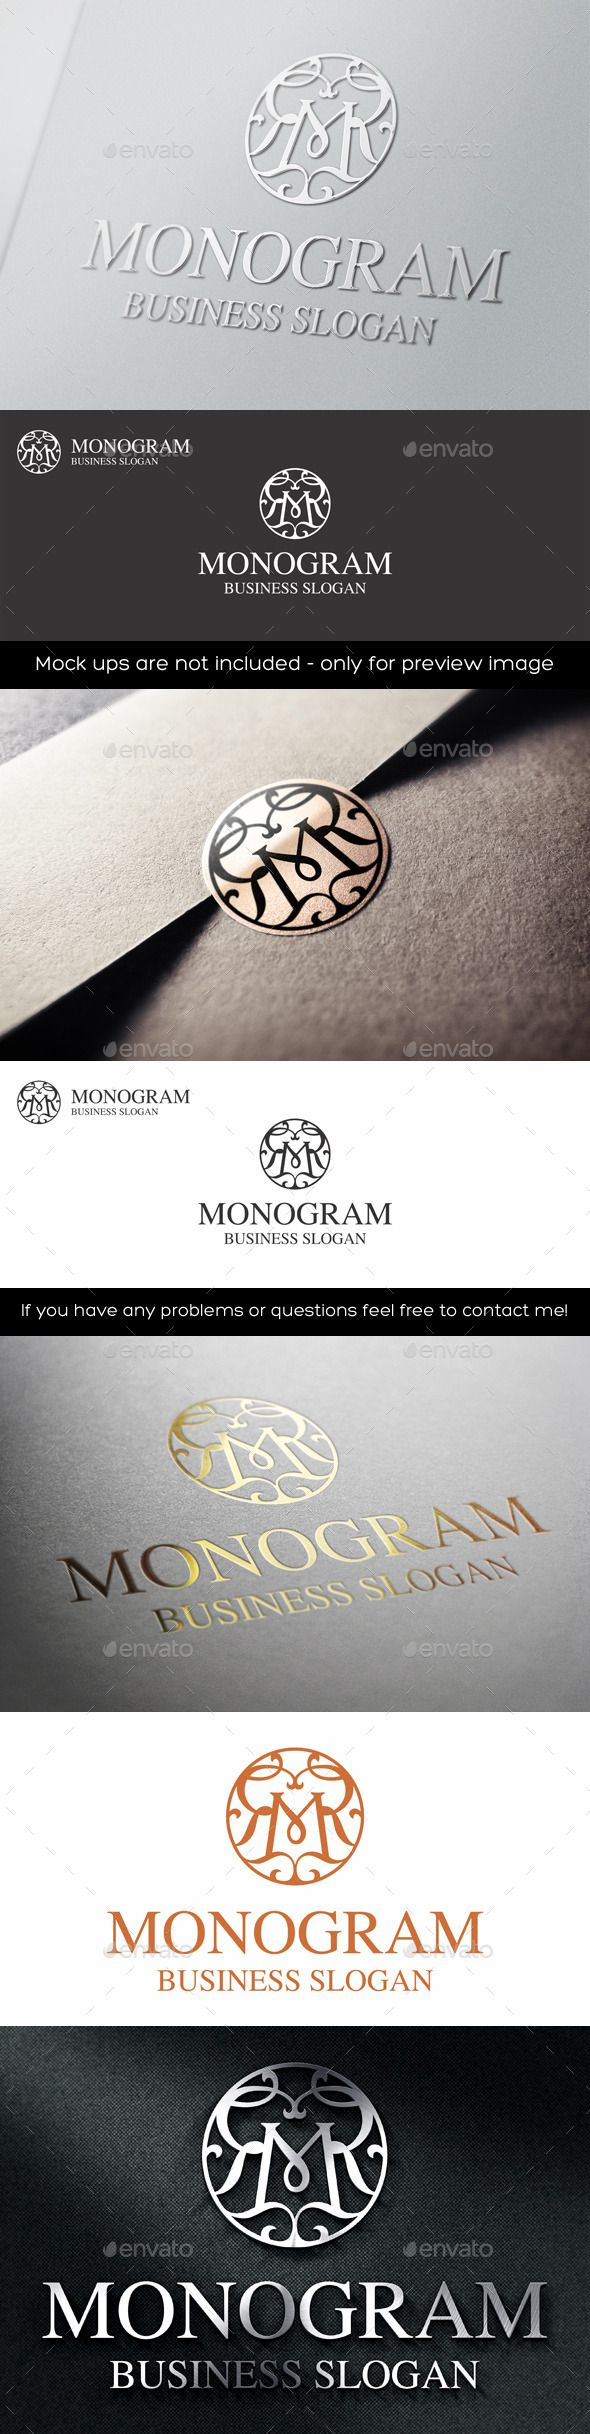 Vintage Monogram M Logo Letter — Vector EPS #classy #business • Available here → https://graphicriver.net/item/vintage-monogram-m-logo-letter/11415212?ref=pxcr